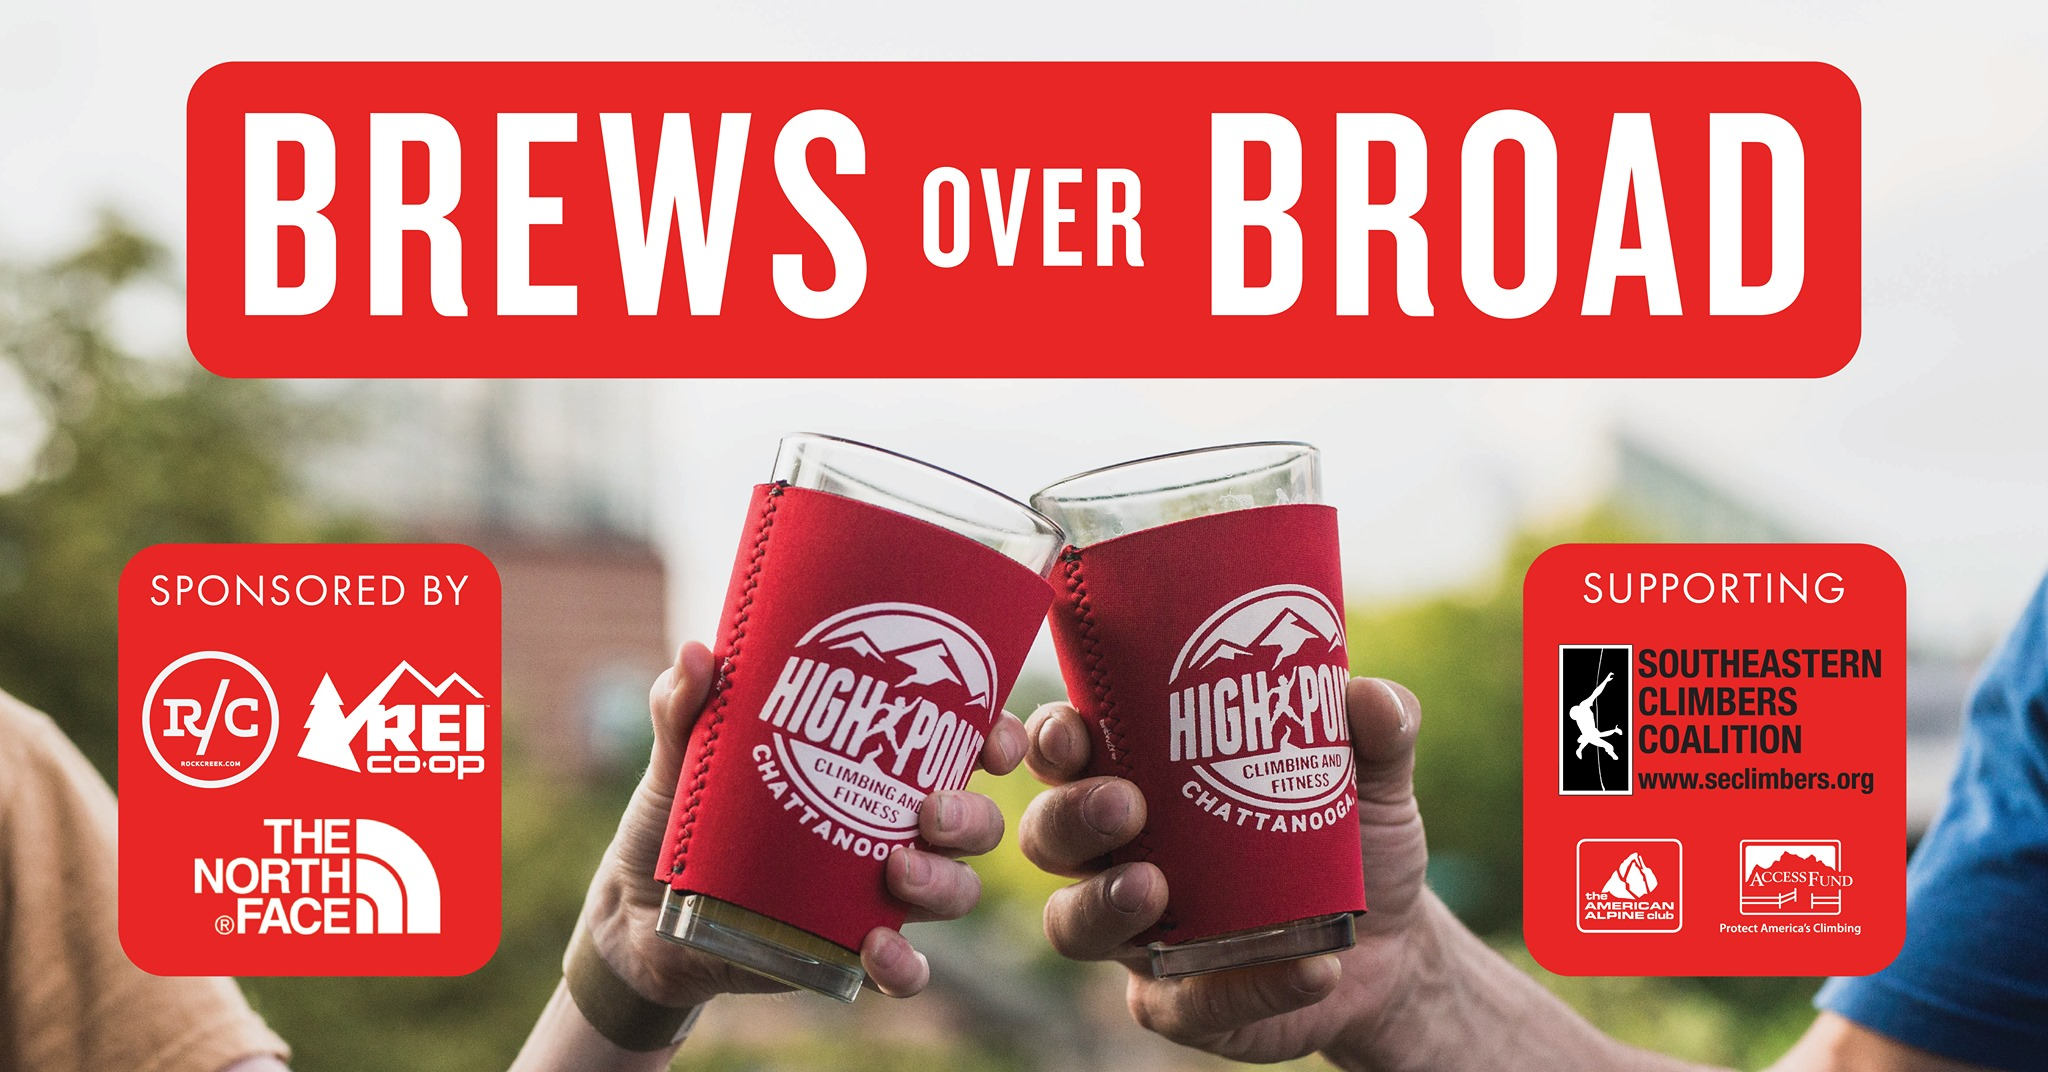 brews over broad .jpg